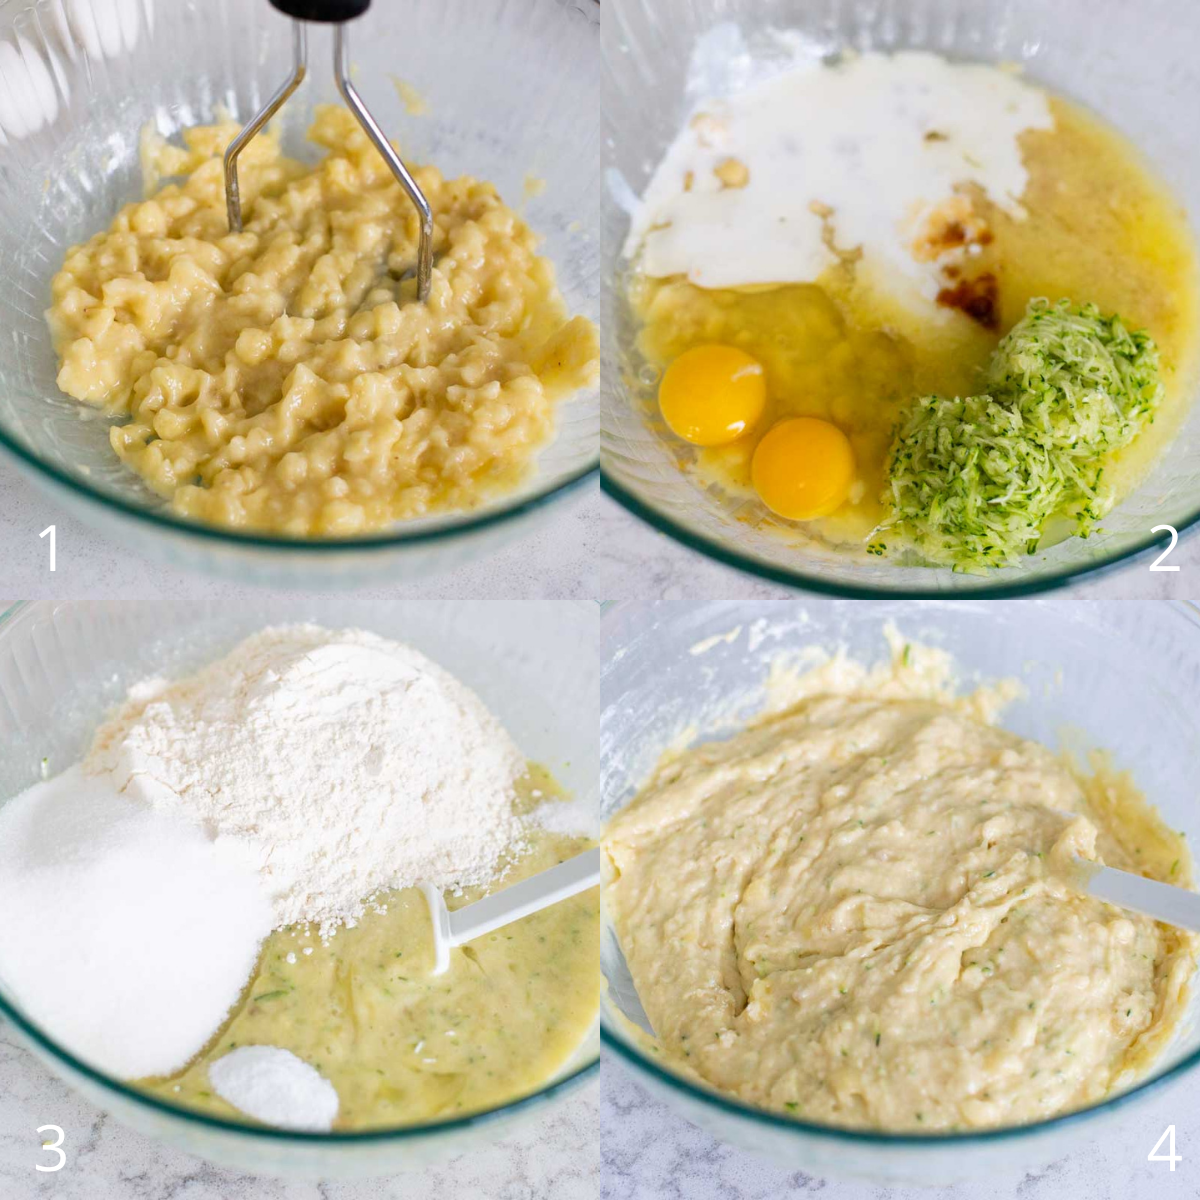 Step by step photos show how to make the batter for homemade banana zucchini bread.